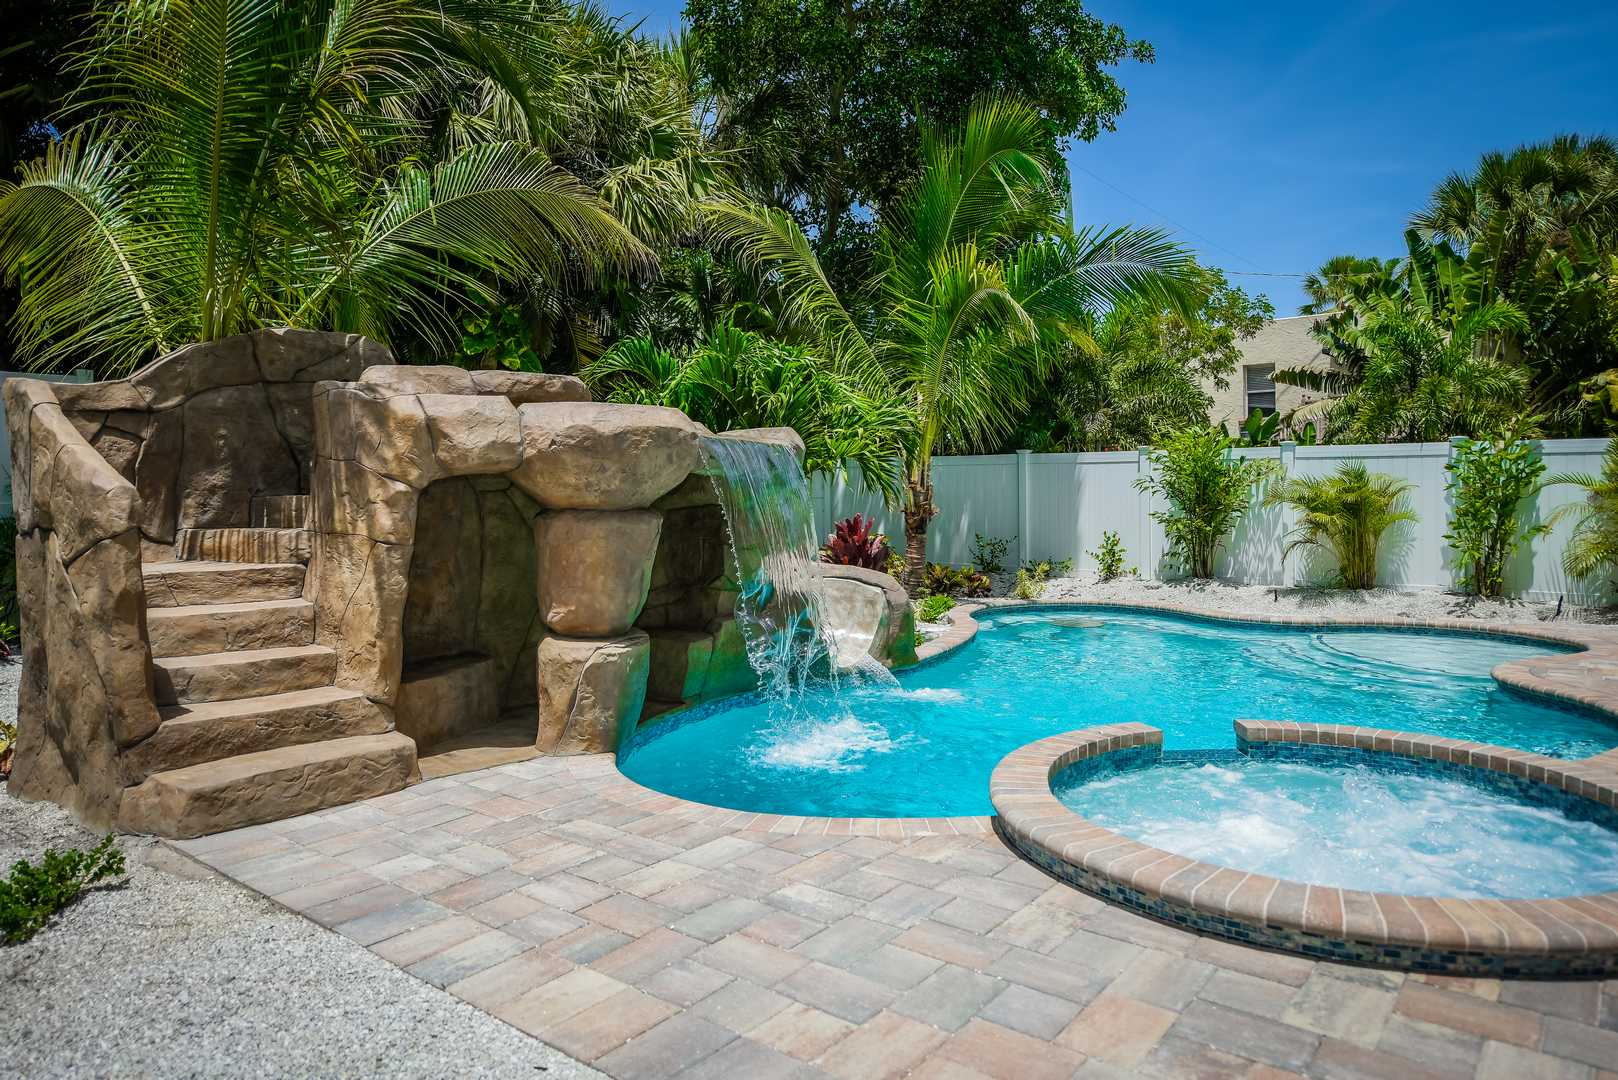 Amazing Resort Style Pool - Your Whole Family will Love it